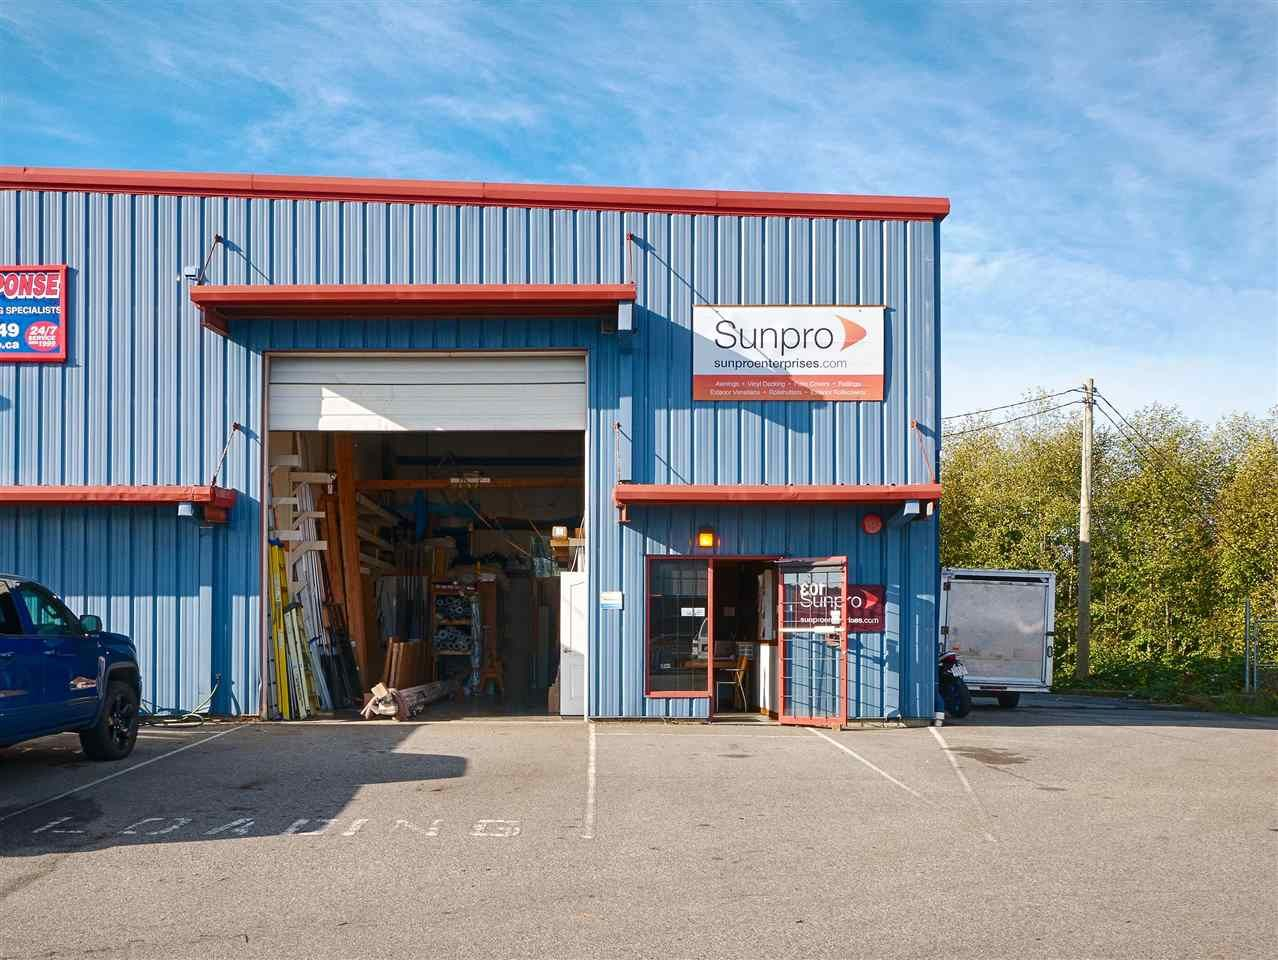 Main Photo: 103 1873 COSYAN Place in Sechelt: Sechelt District Industrial for sale (Sunshine Coast)  : MLS®# C8028321